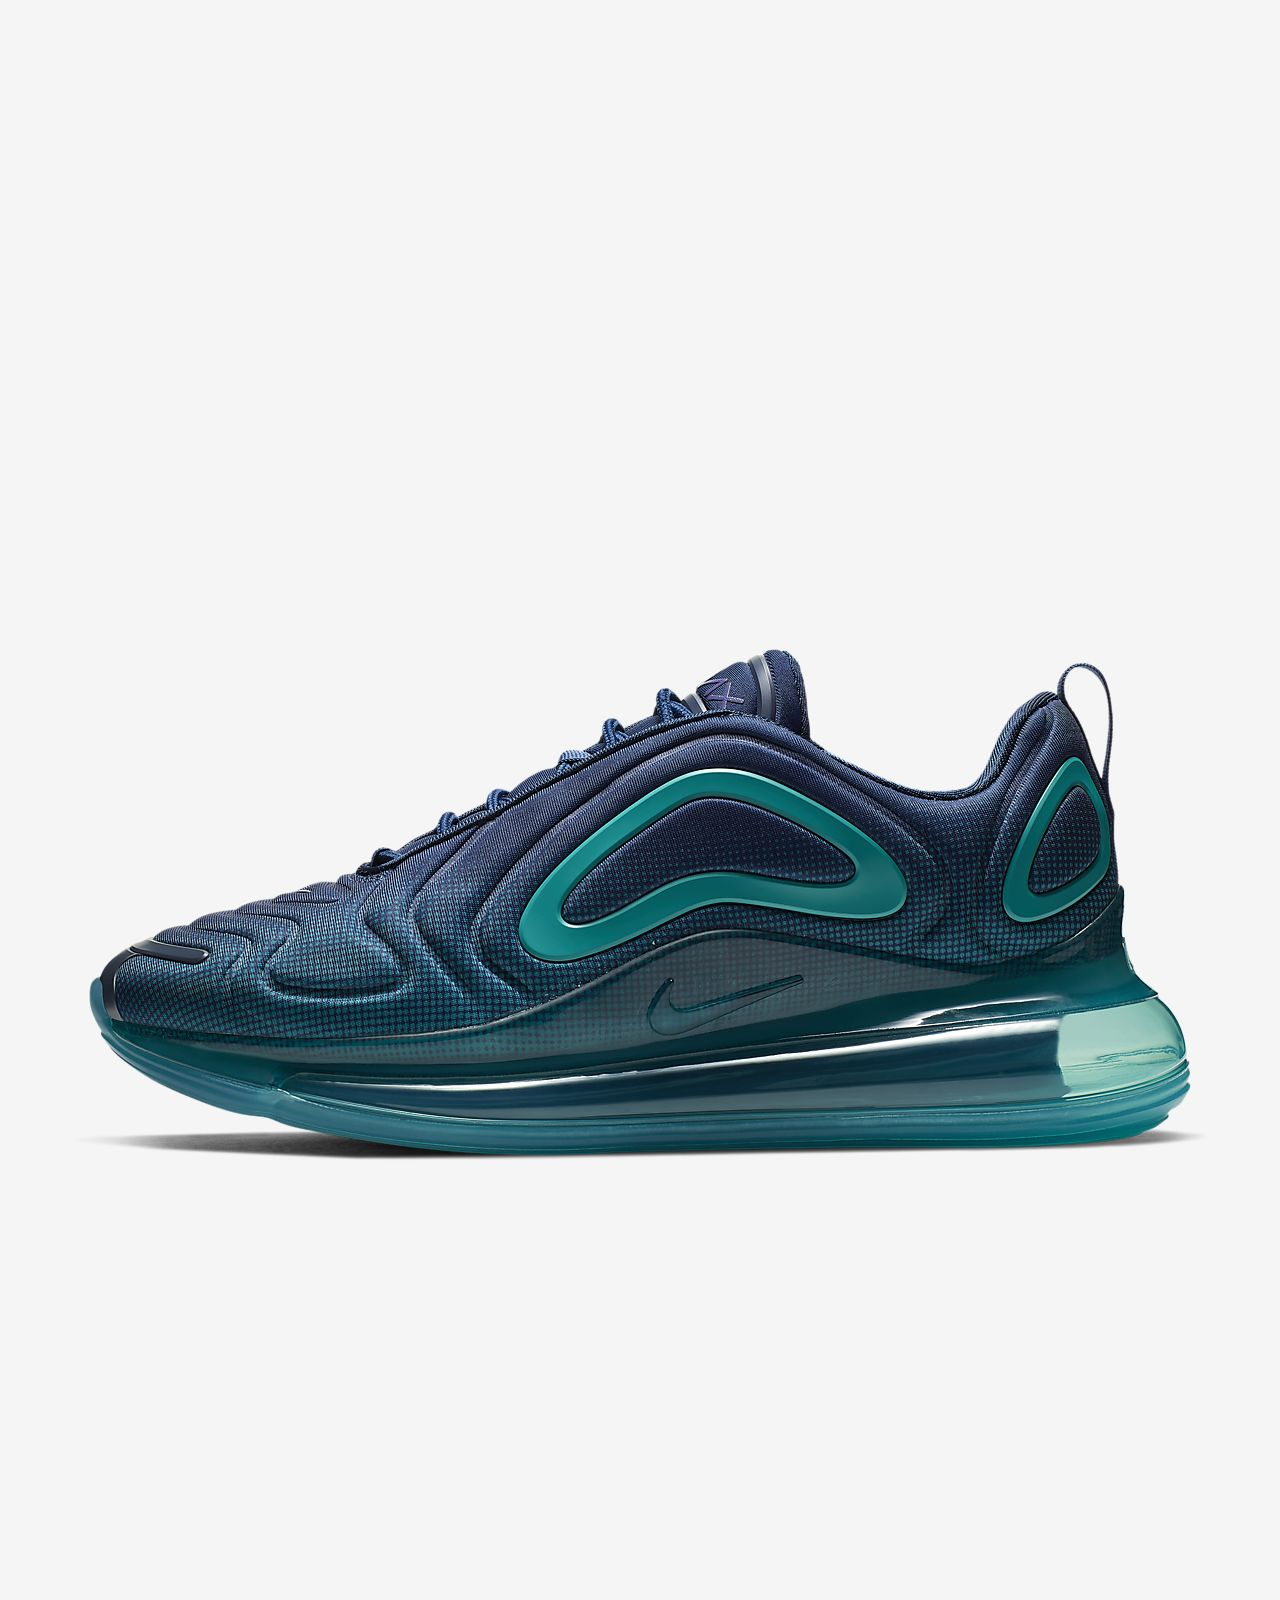 6a0c035746 Nike Air Max 720 Men's Shoe. Nike.com MA